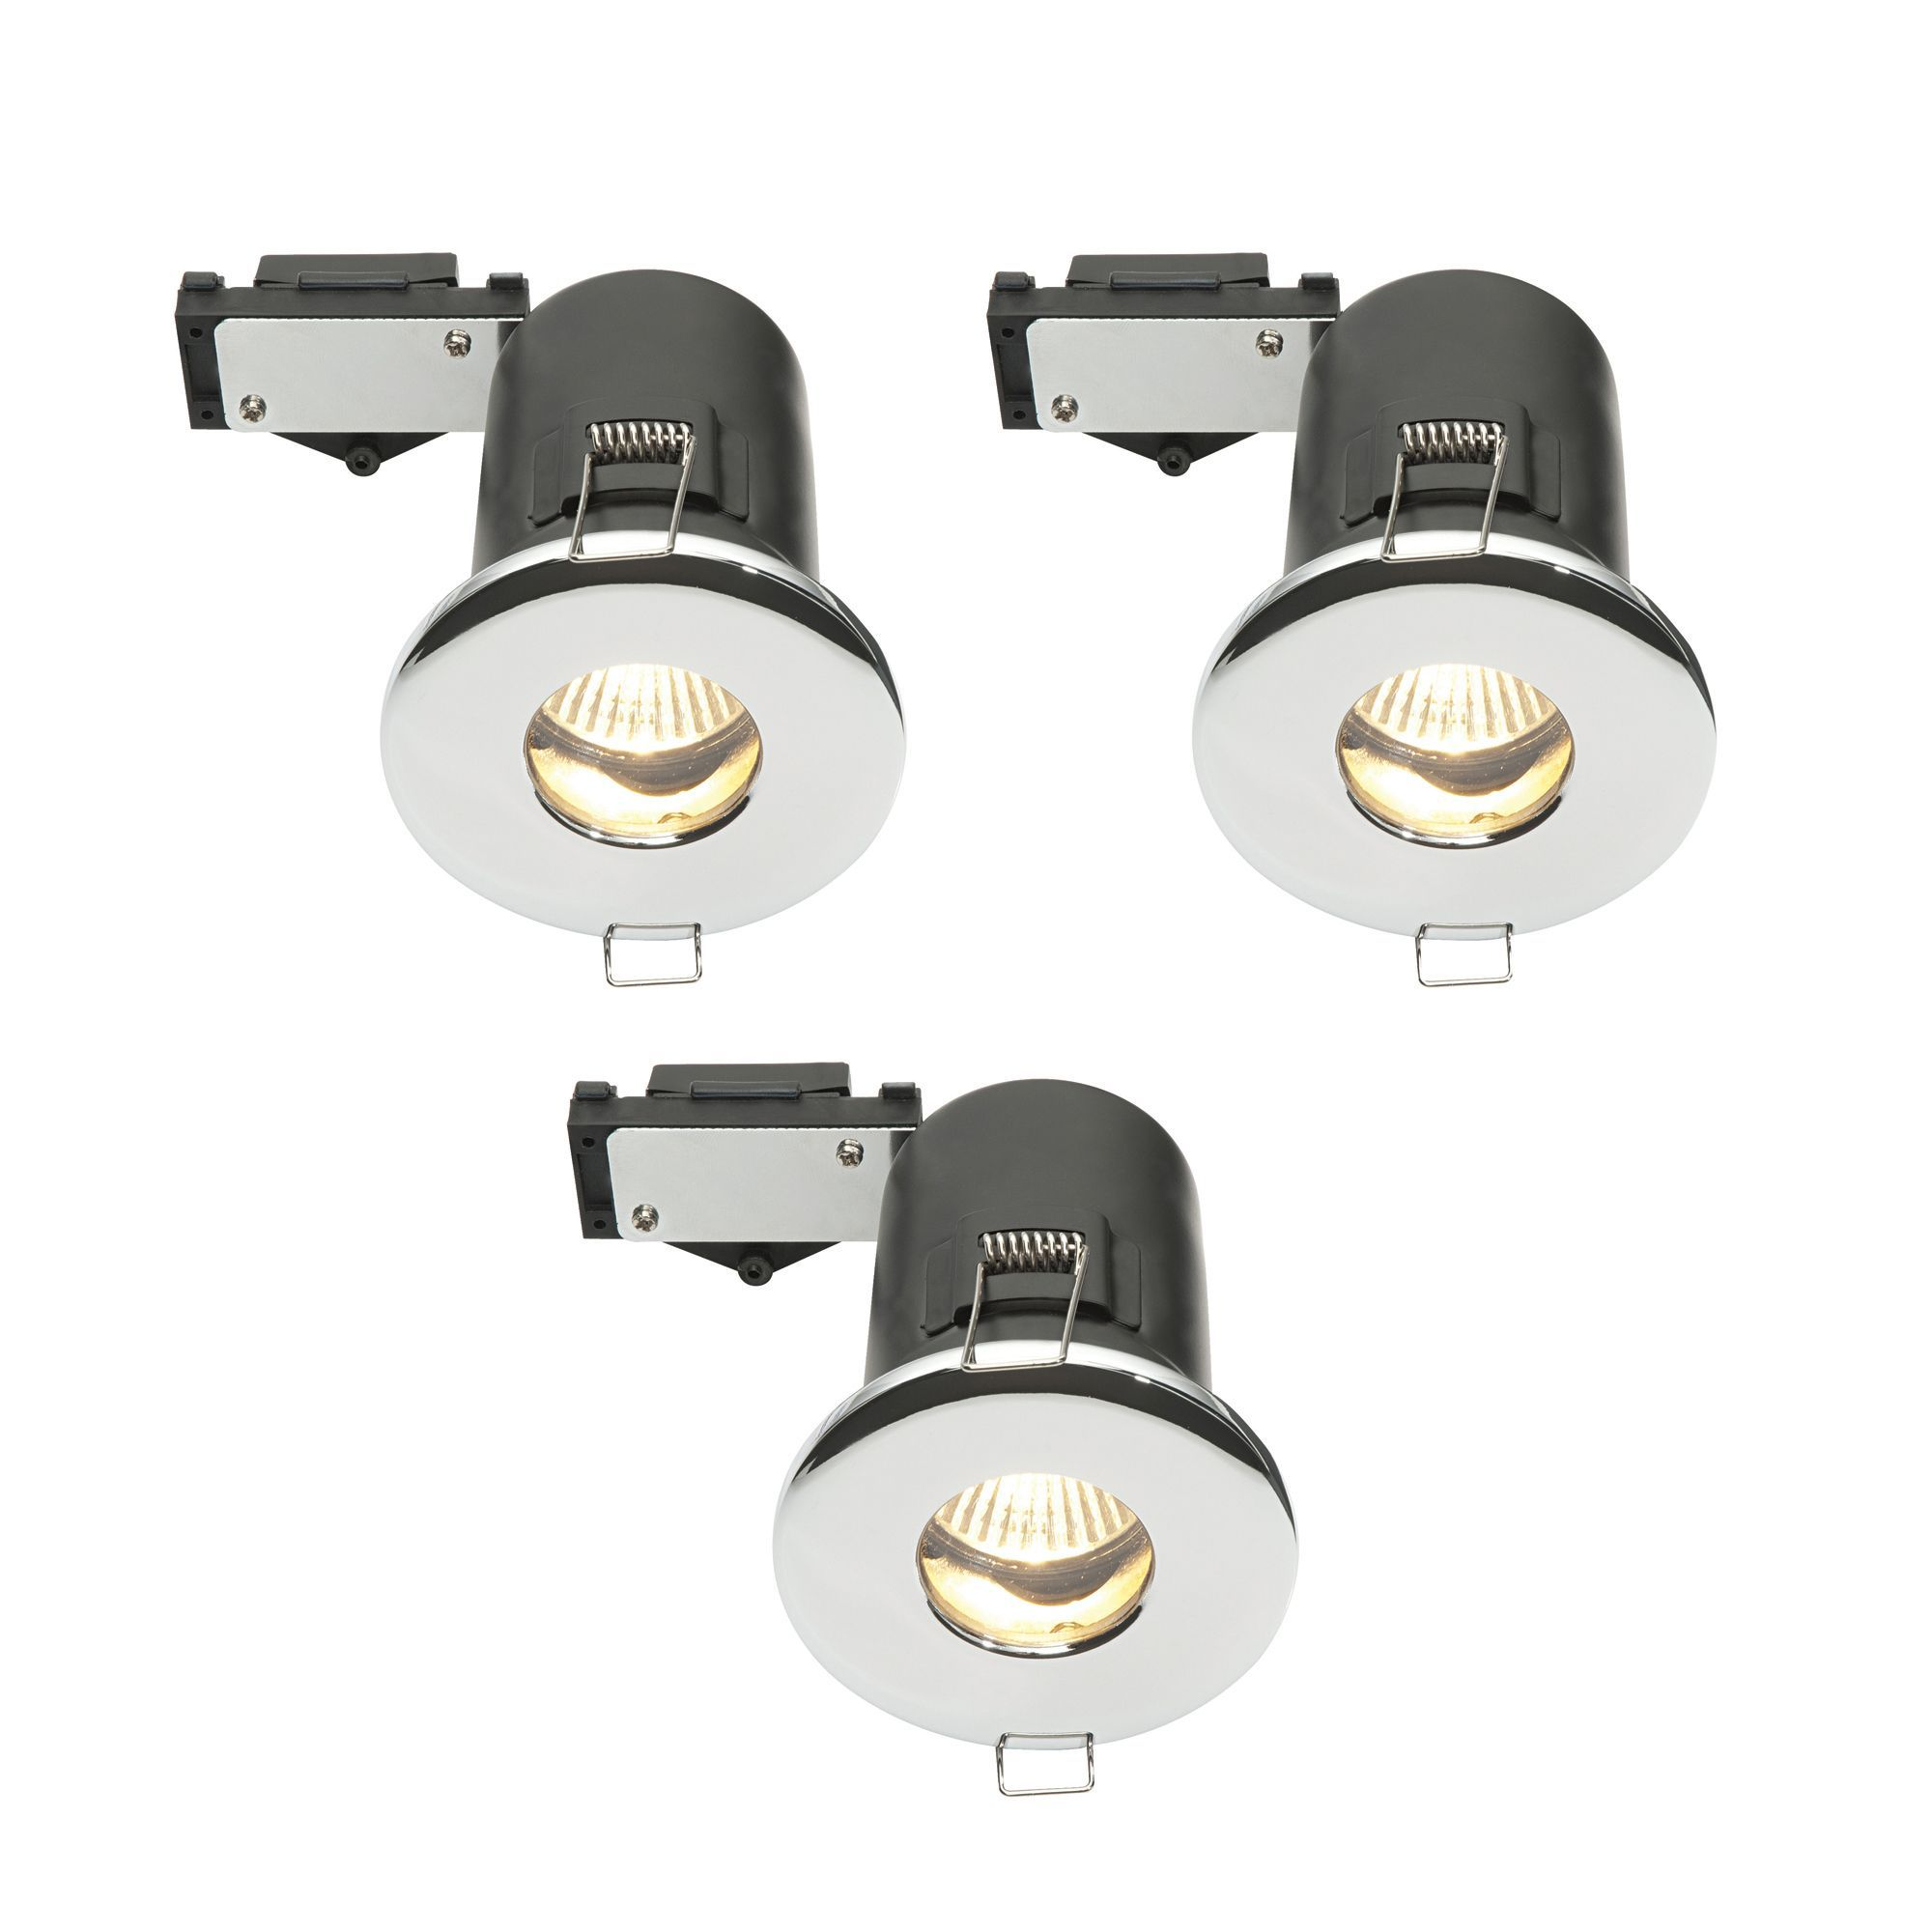 Diall Fire Rated Chrome Effect Halogen Downlight, Set Of 3